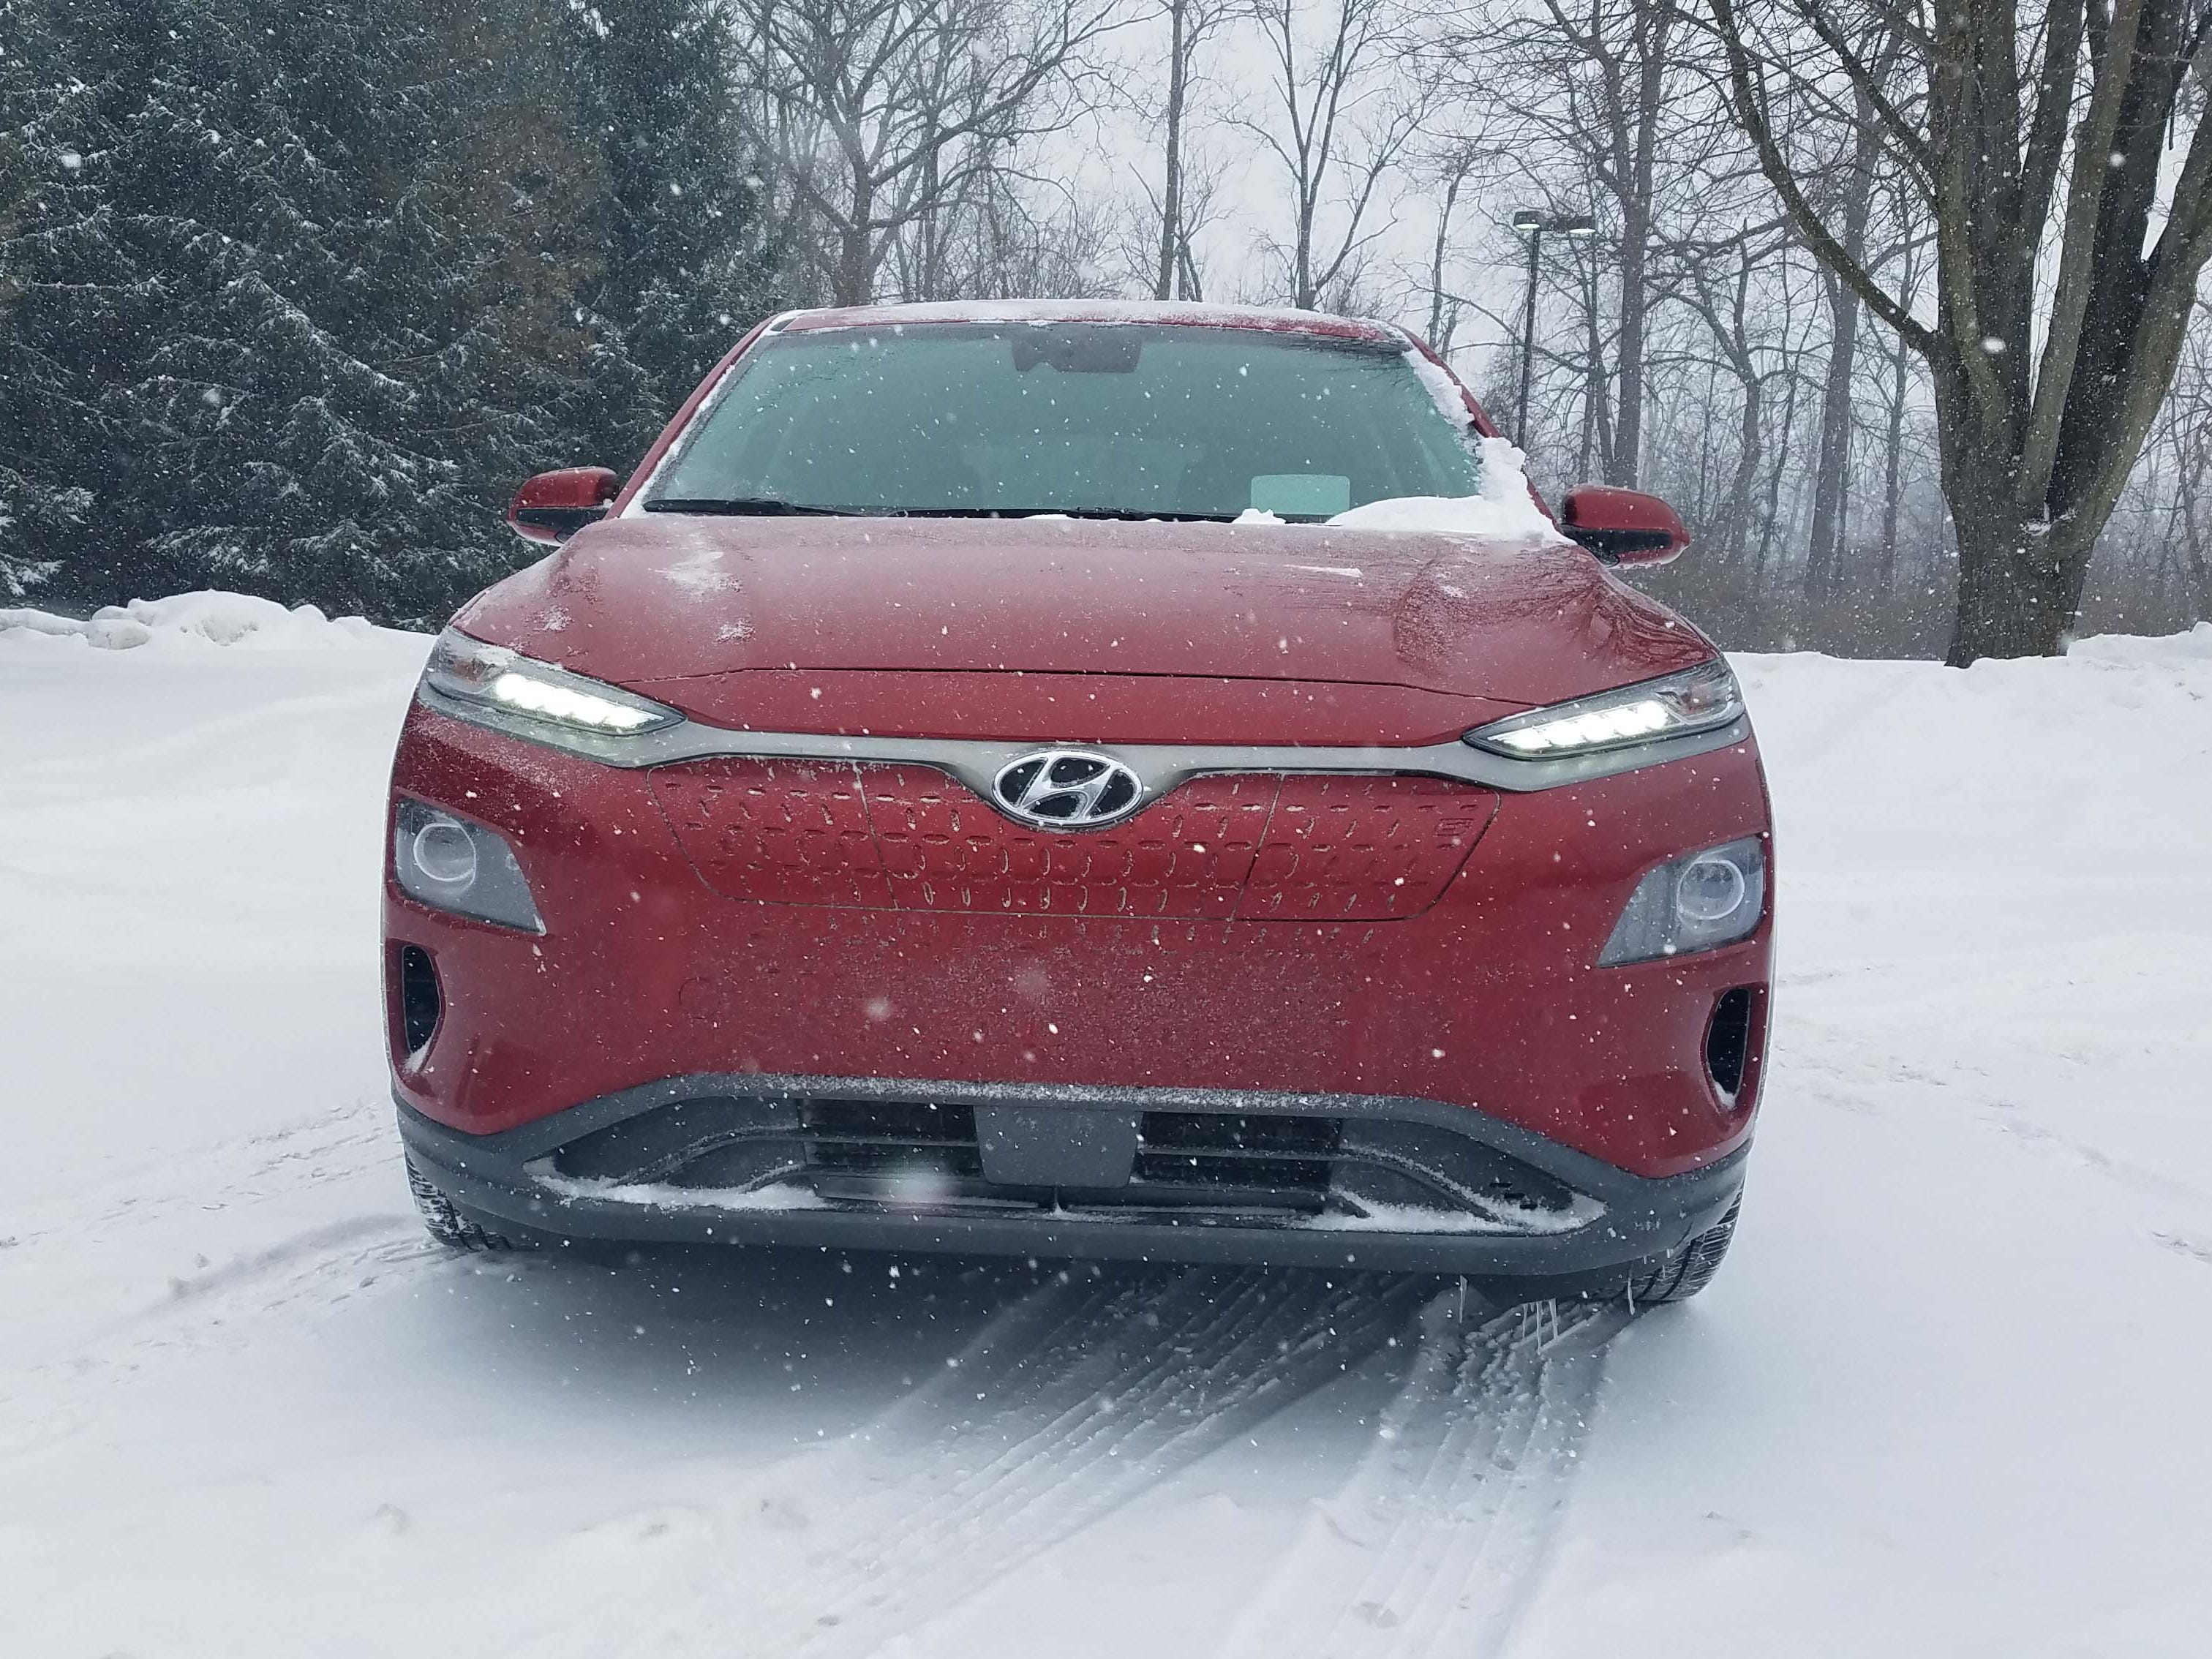 Who needs a grille? The 2019 Hyundai Kona EV gives off a Tesla Model X vibe by eliminating its grille save for barely seen chicken markings that help disguise the charge port on the left front. The headlights are actually below the running lights.